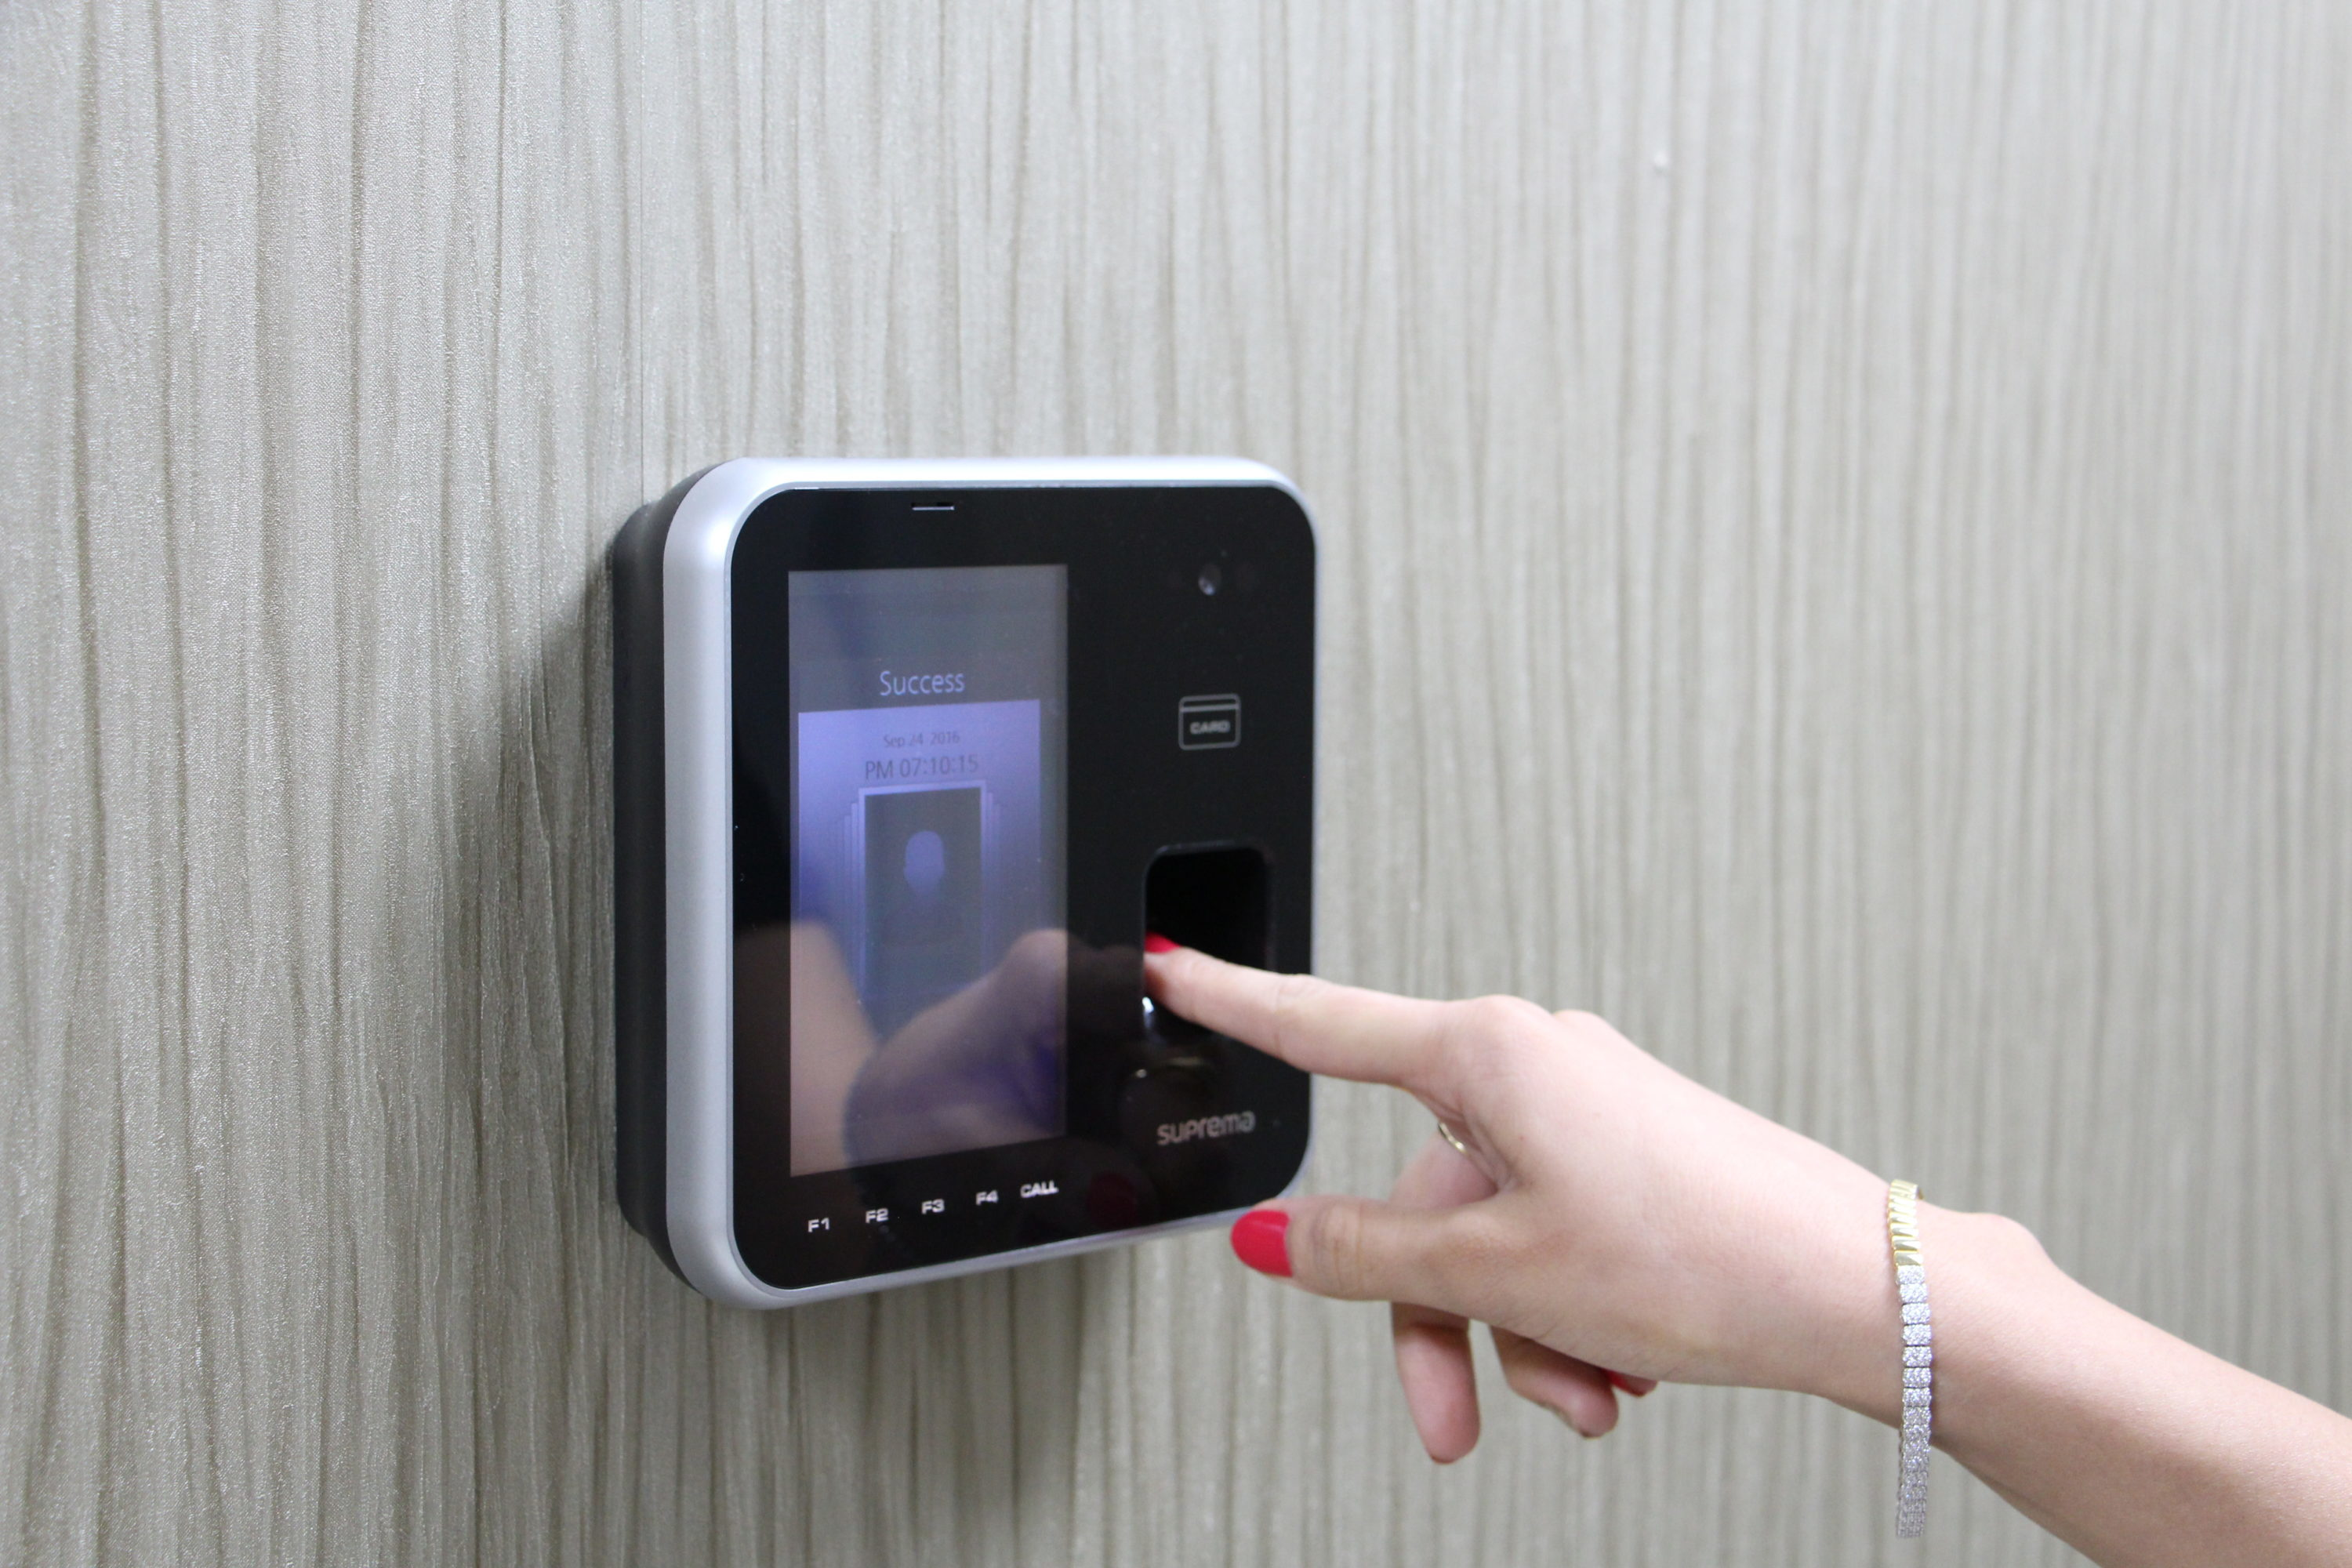 Biometric security - fingerprint scanner